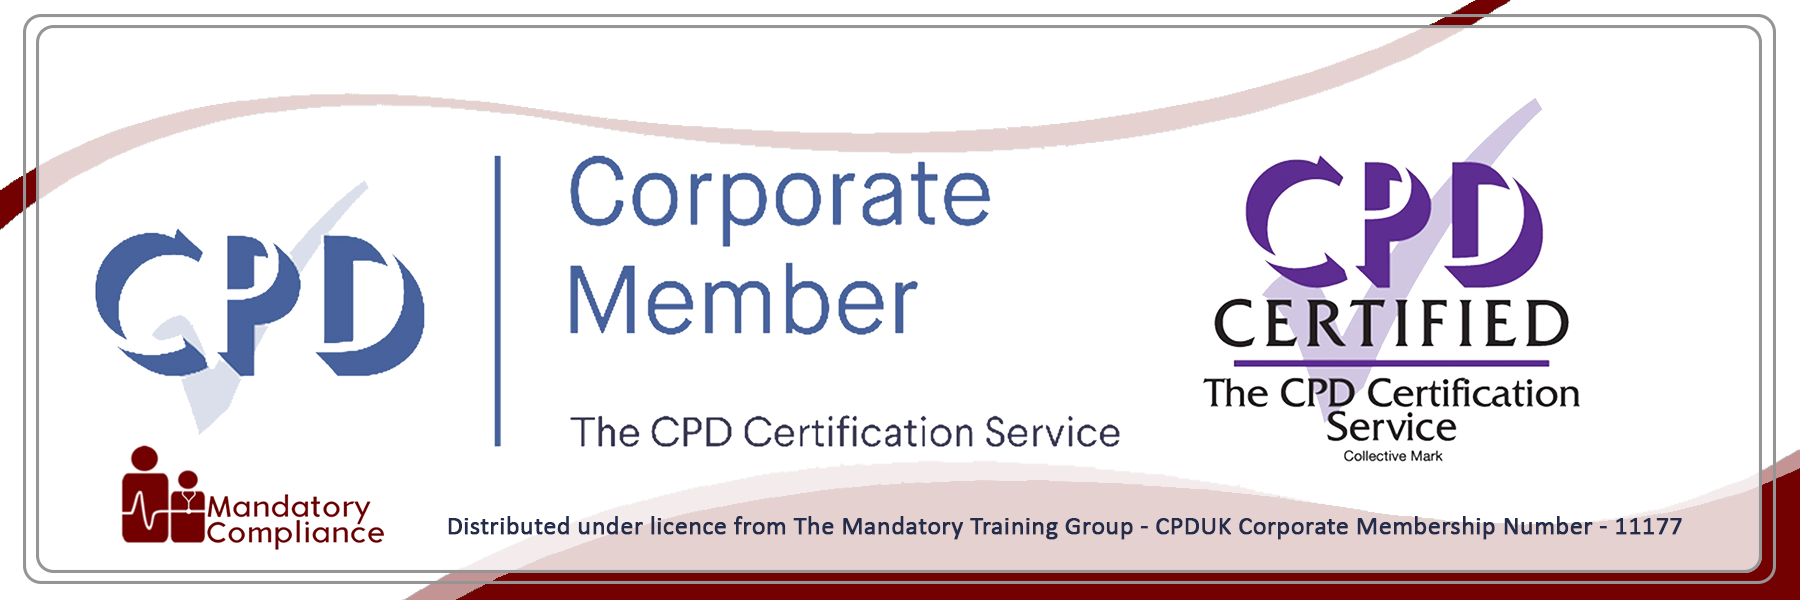 Networking Outside the Company - Online Training Course - CPDUK Accredited - Mandatory Compliance UK -